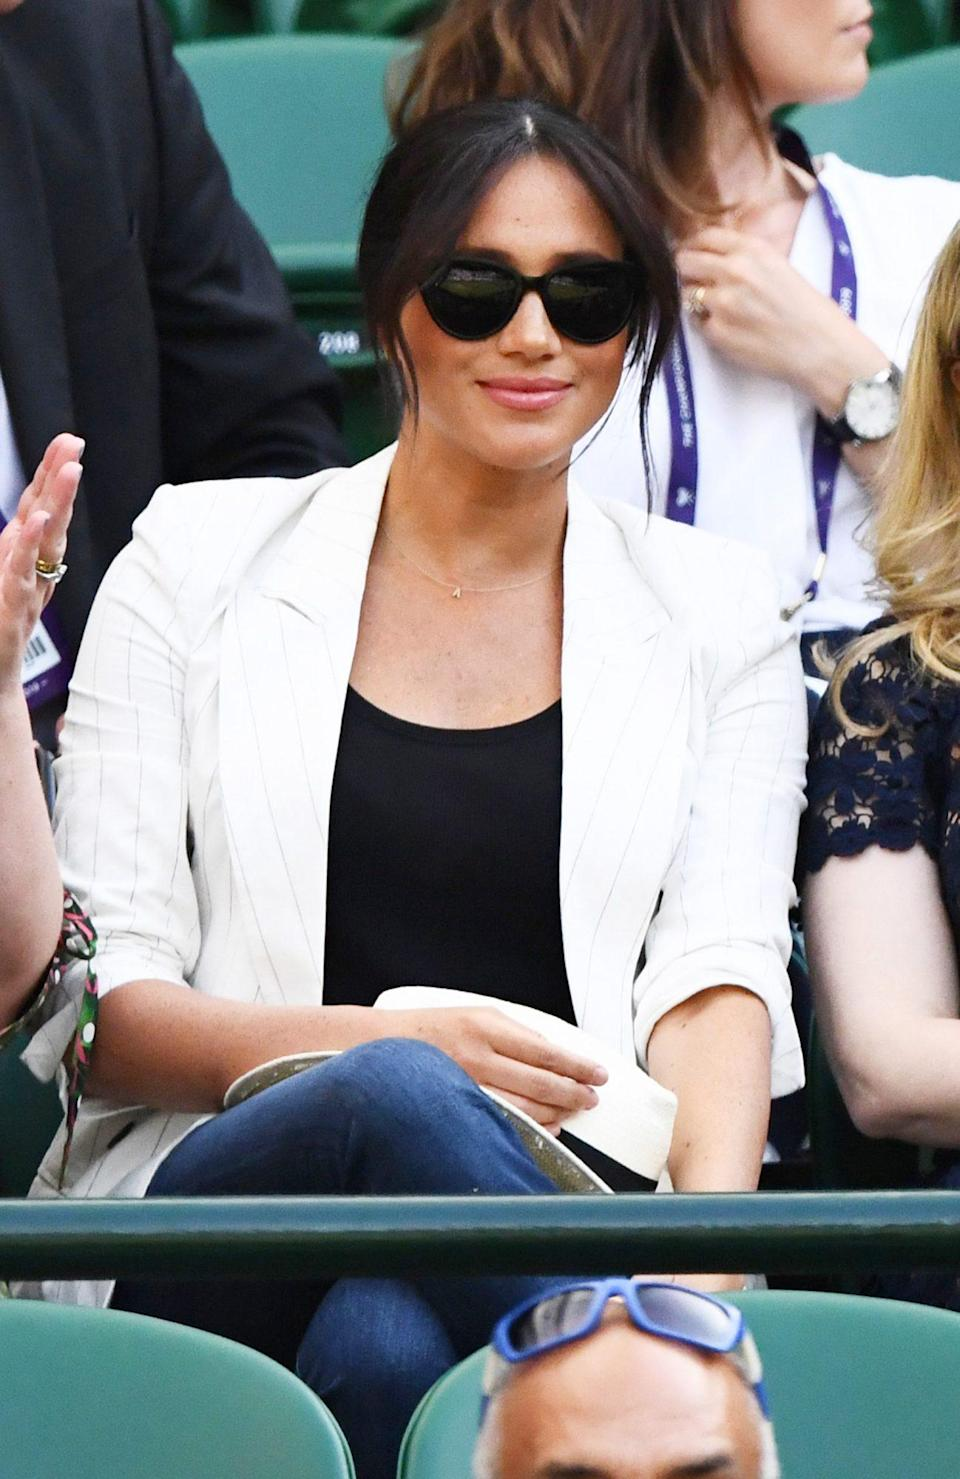 """<p>While at Wimbledon to support friend Serena Williams, Meghan kept Archie close <a href=""""https://people.com/royals/all-about-meghan-markles-meaningful-gold-necklace-to-honor-son-archie/"""" rel=""""nofollow noopener"""" target=""""_blank"""" data-ylk=""""slk:with a delicate Verse necklace featuring his initial"""" class=""""link rapid-noclick-resp"""">with a delicate Verse necklace featuring his initial</a>. </p>"""